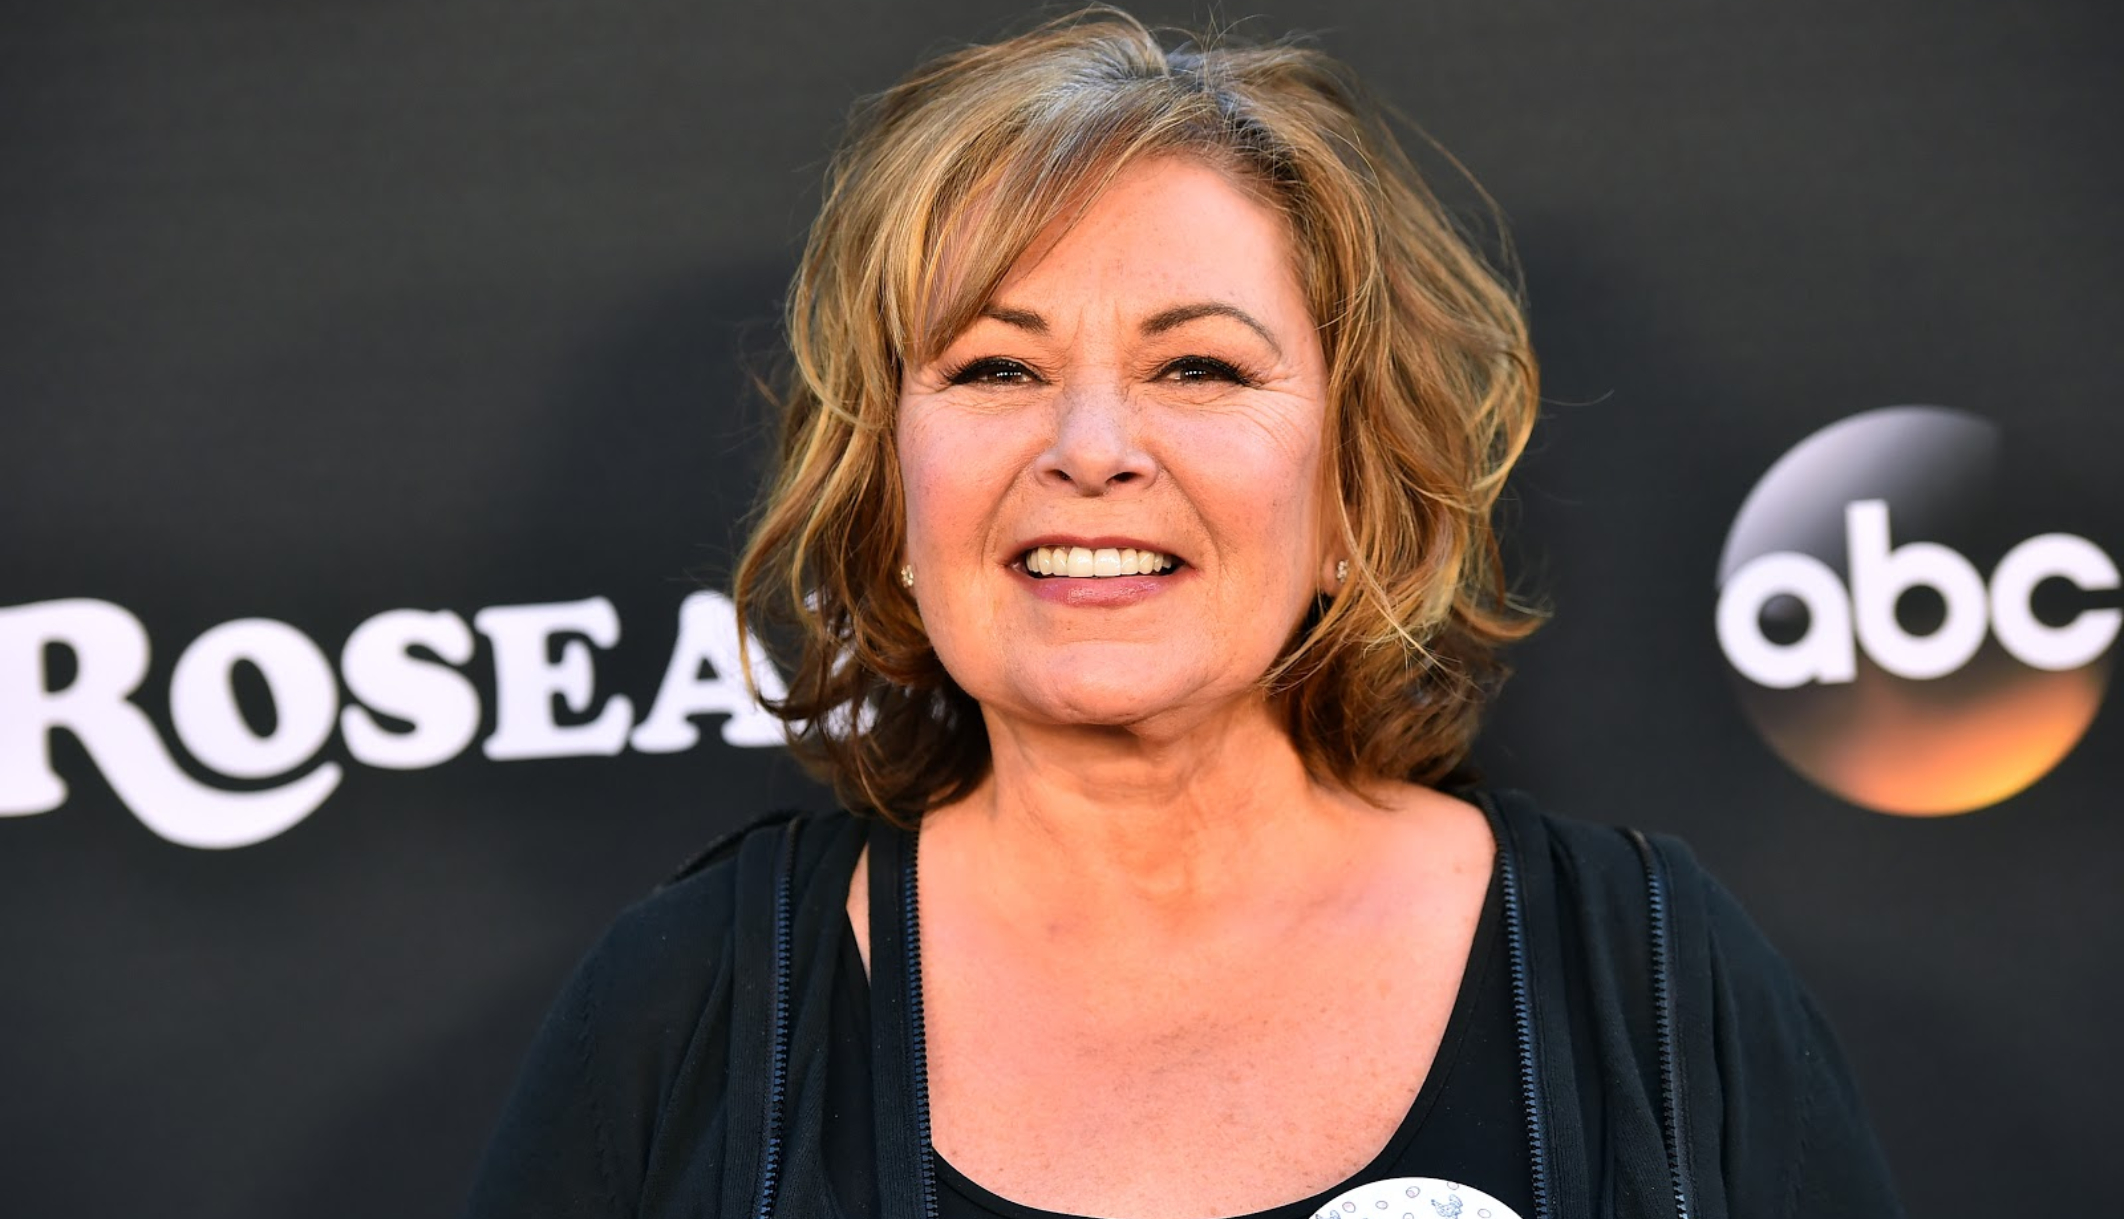 John Goodman Defends Roseanne Barr After Tweet Scandal, Says She's Not Racist